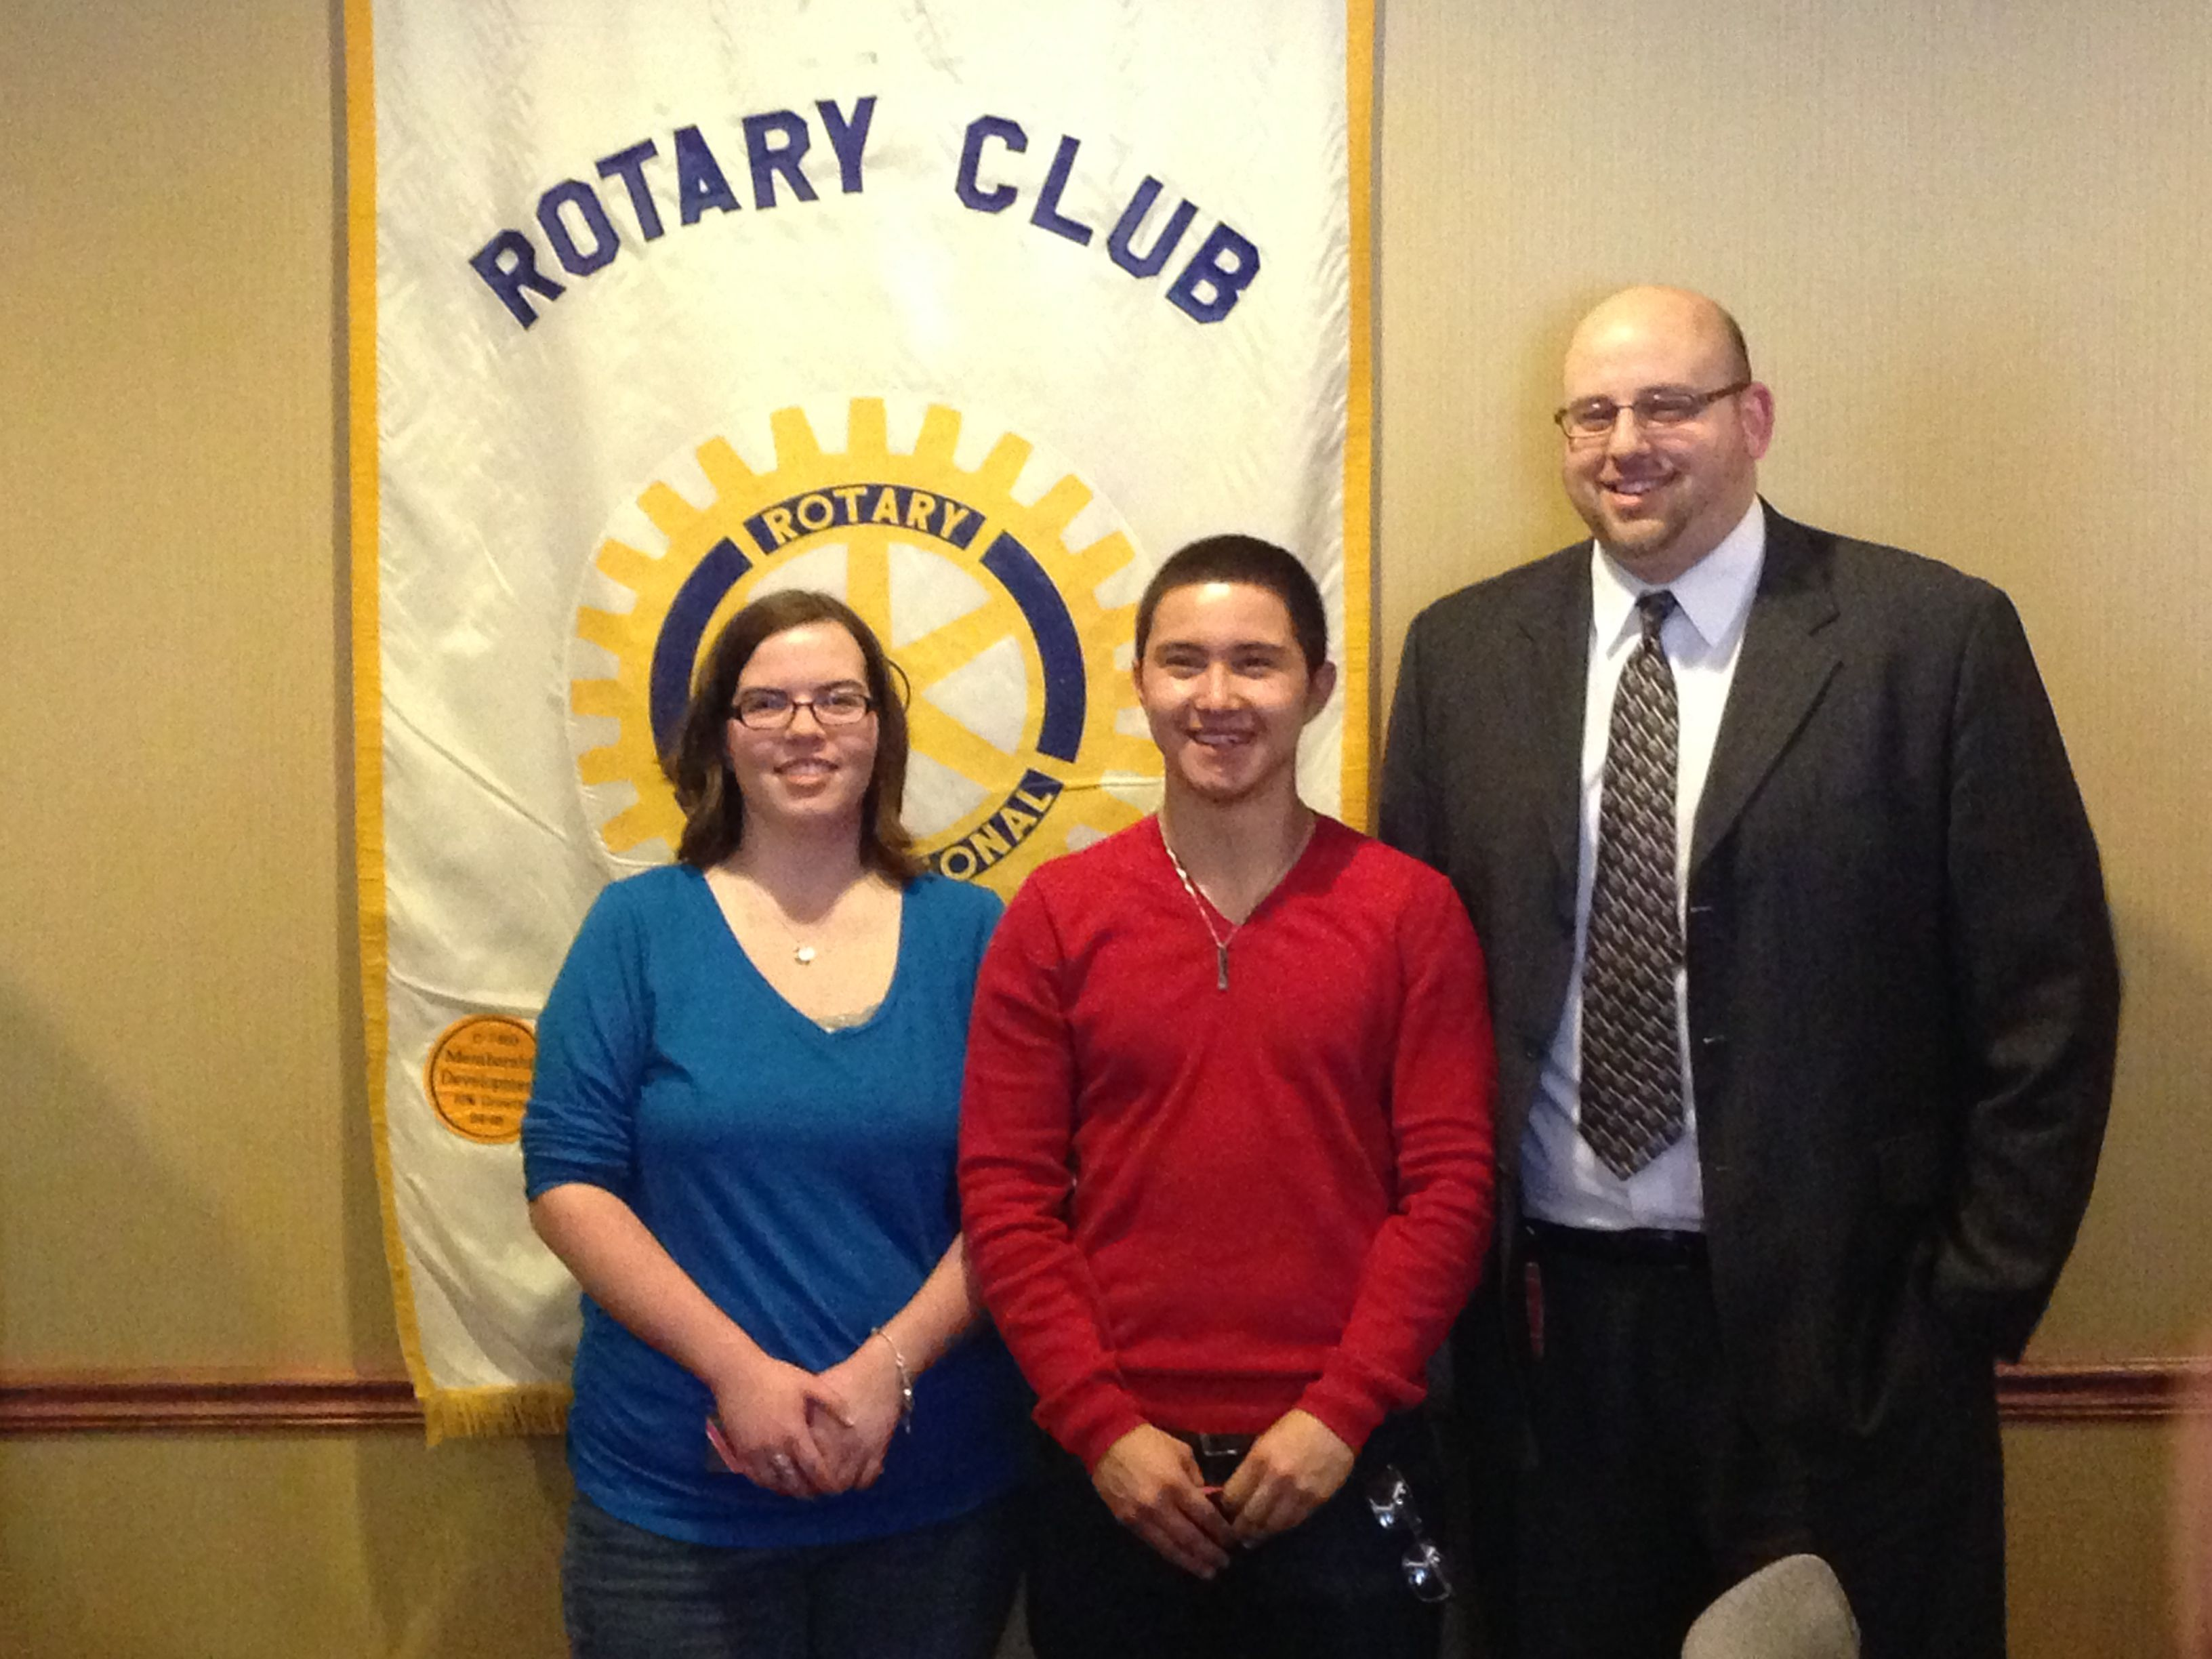 Rotary Club Of Bensalem March Students Of The Month Hannah Hartman